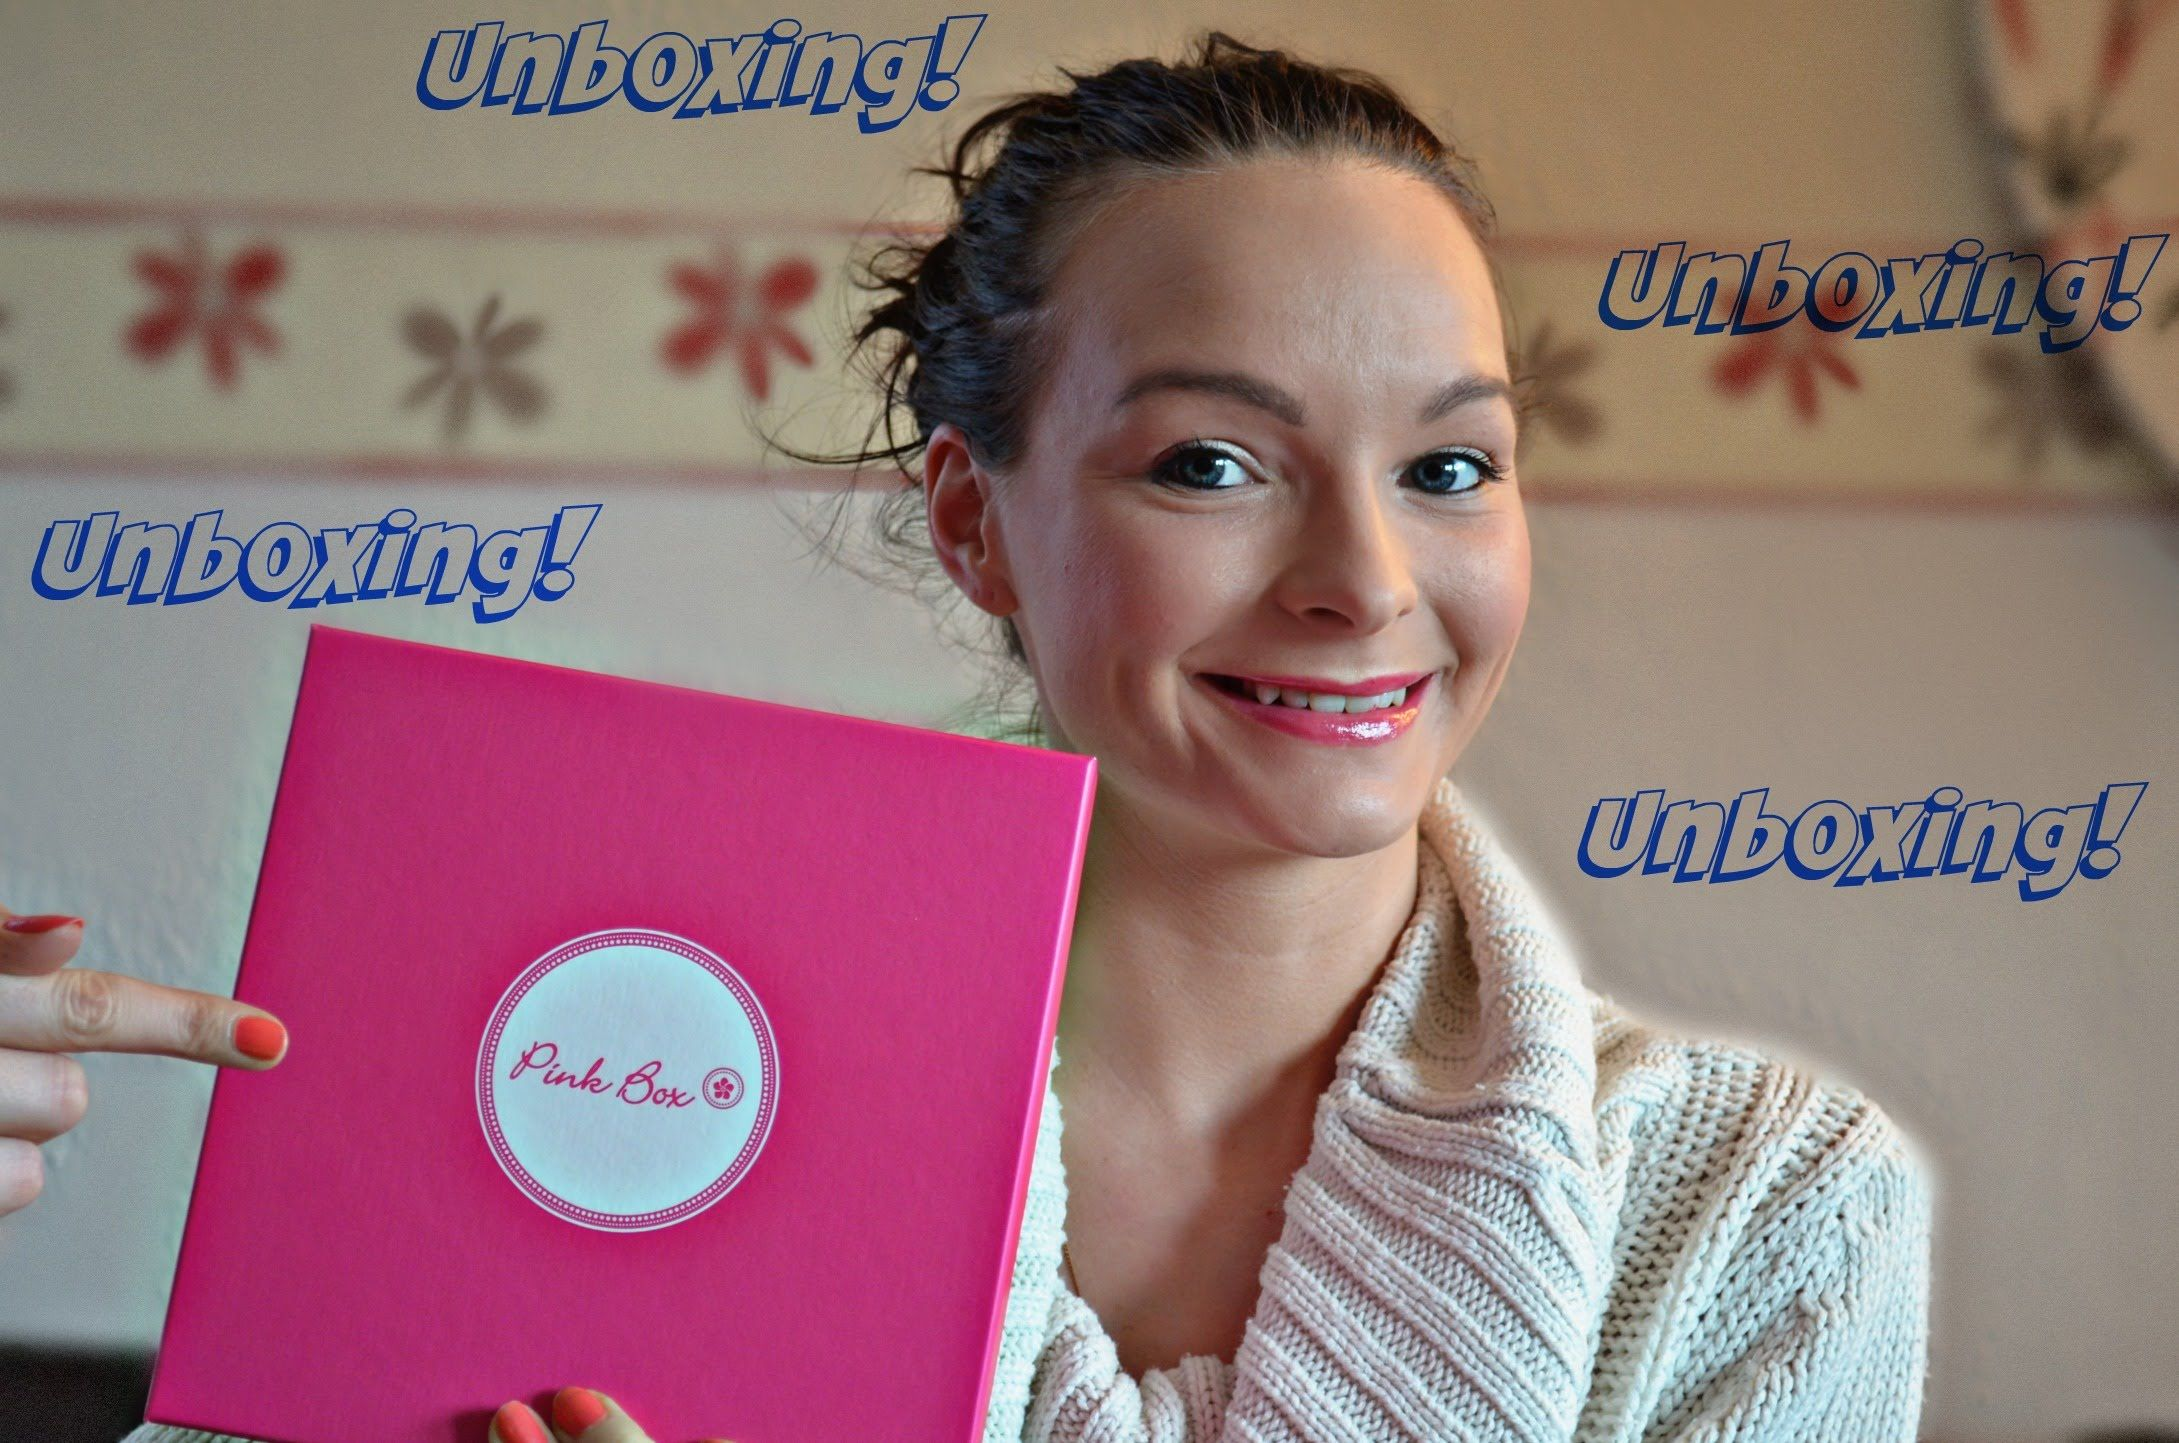 ★ Unboxing! ★ Pink Box März 2015 ★| Nifty